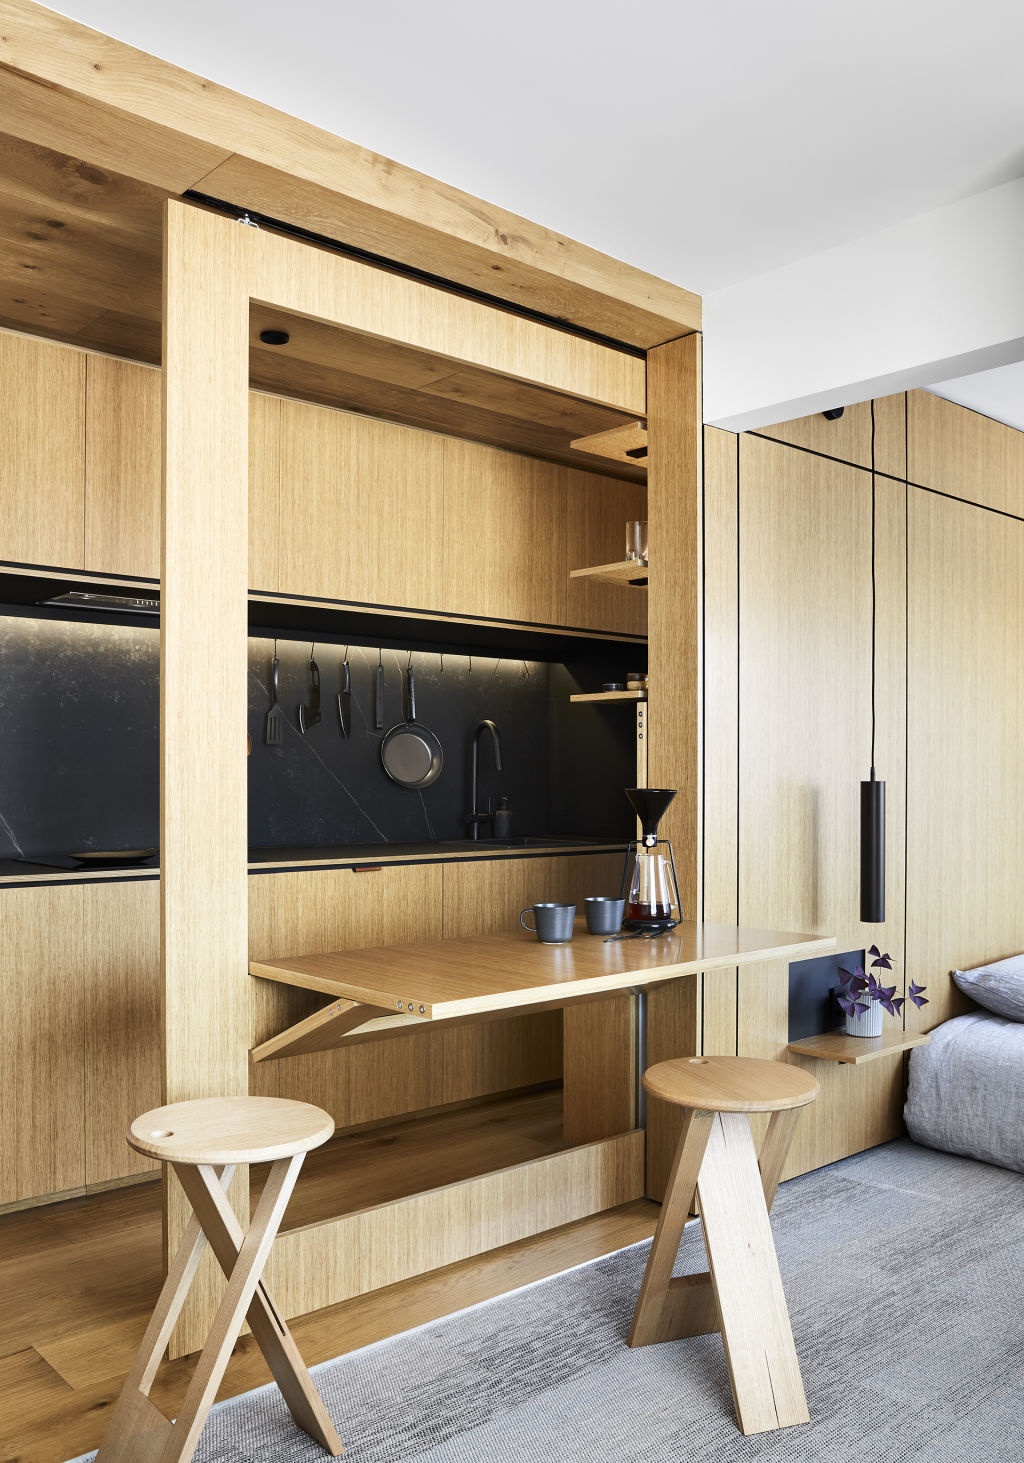 Richmond Aparment by Tsai Design. Photo: Tess Kelly.